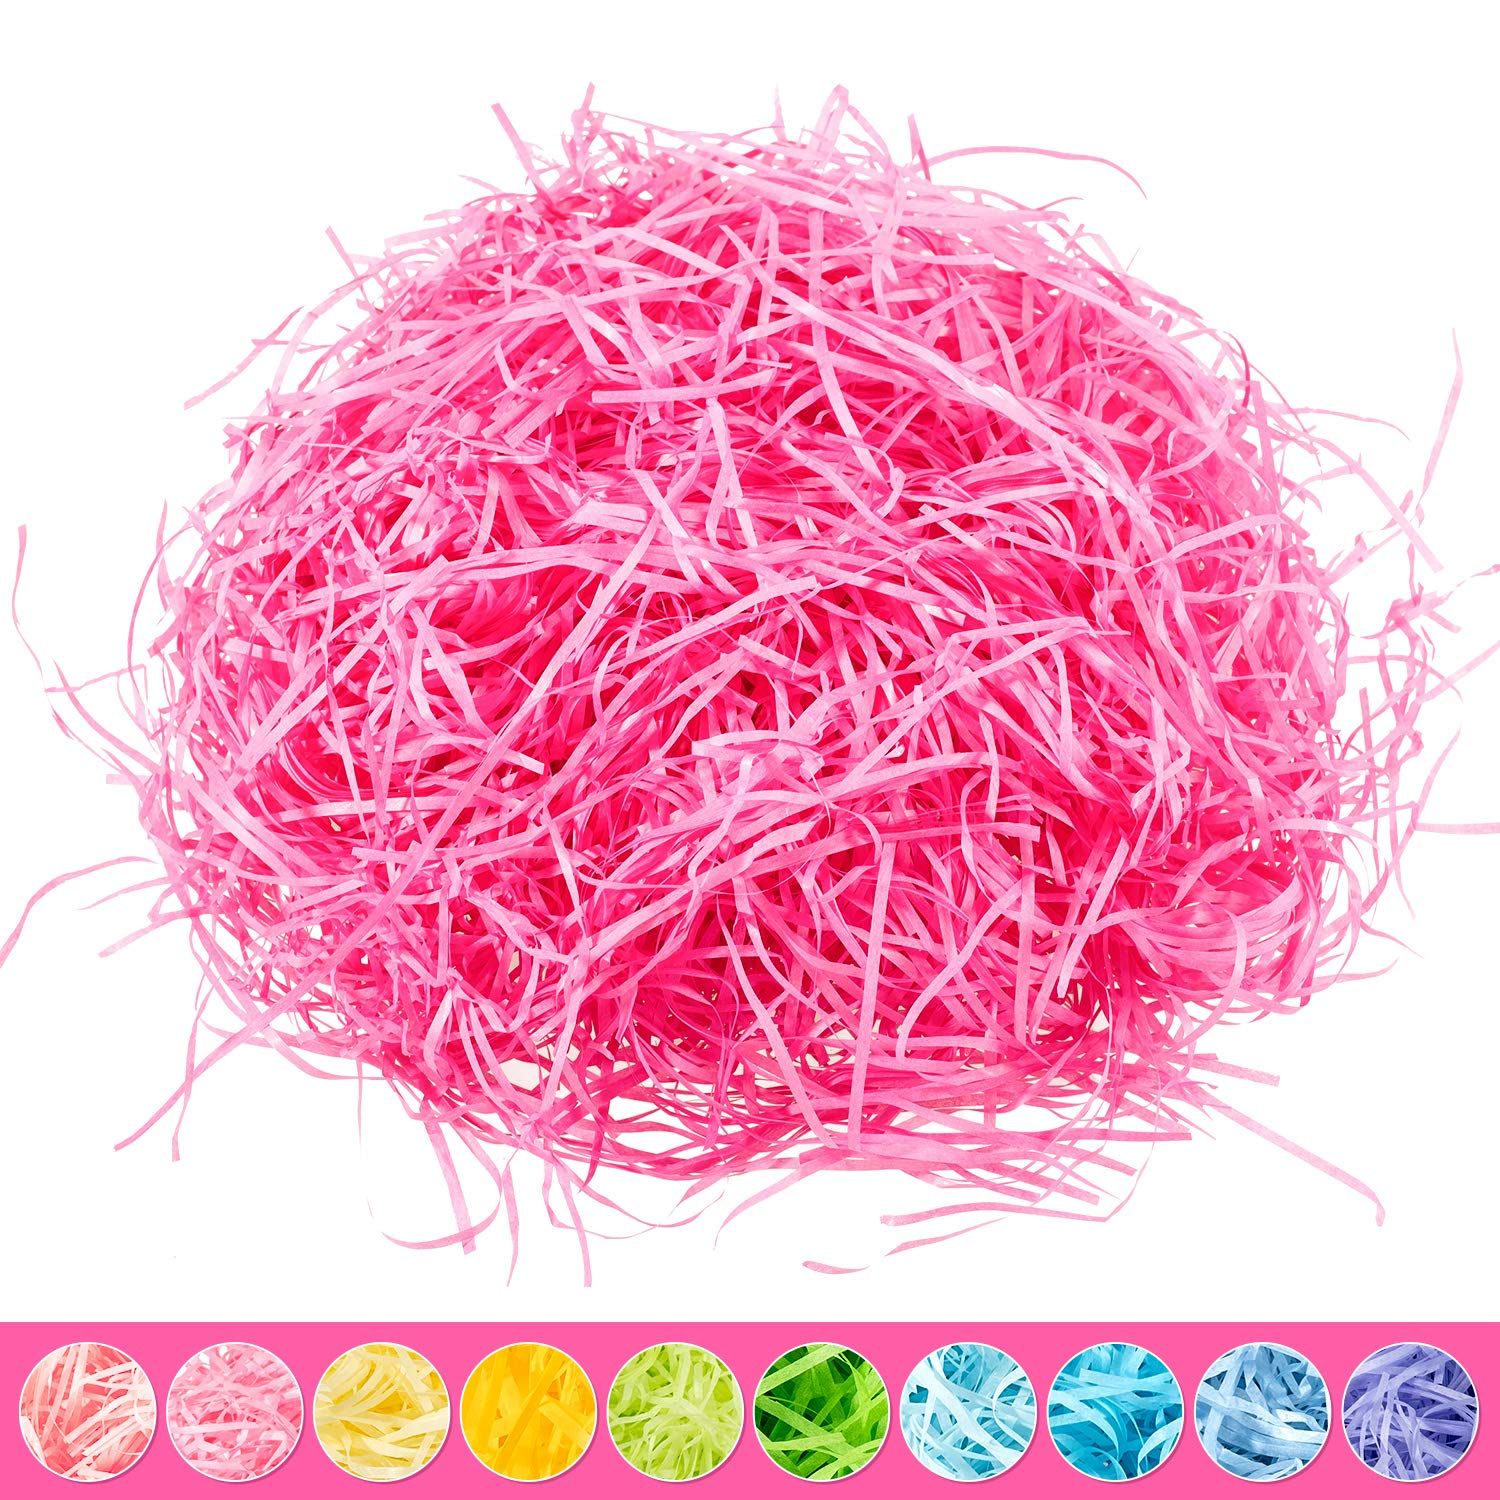 Whaline Easter Basket Grass Craft Shredded Tissue Raffia Gift Filler Paper Shreds for Baskets Egg Stuffers for Spring Party Supplies Accessories Decorations (Yellow)